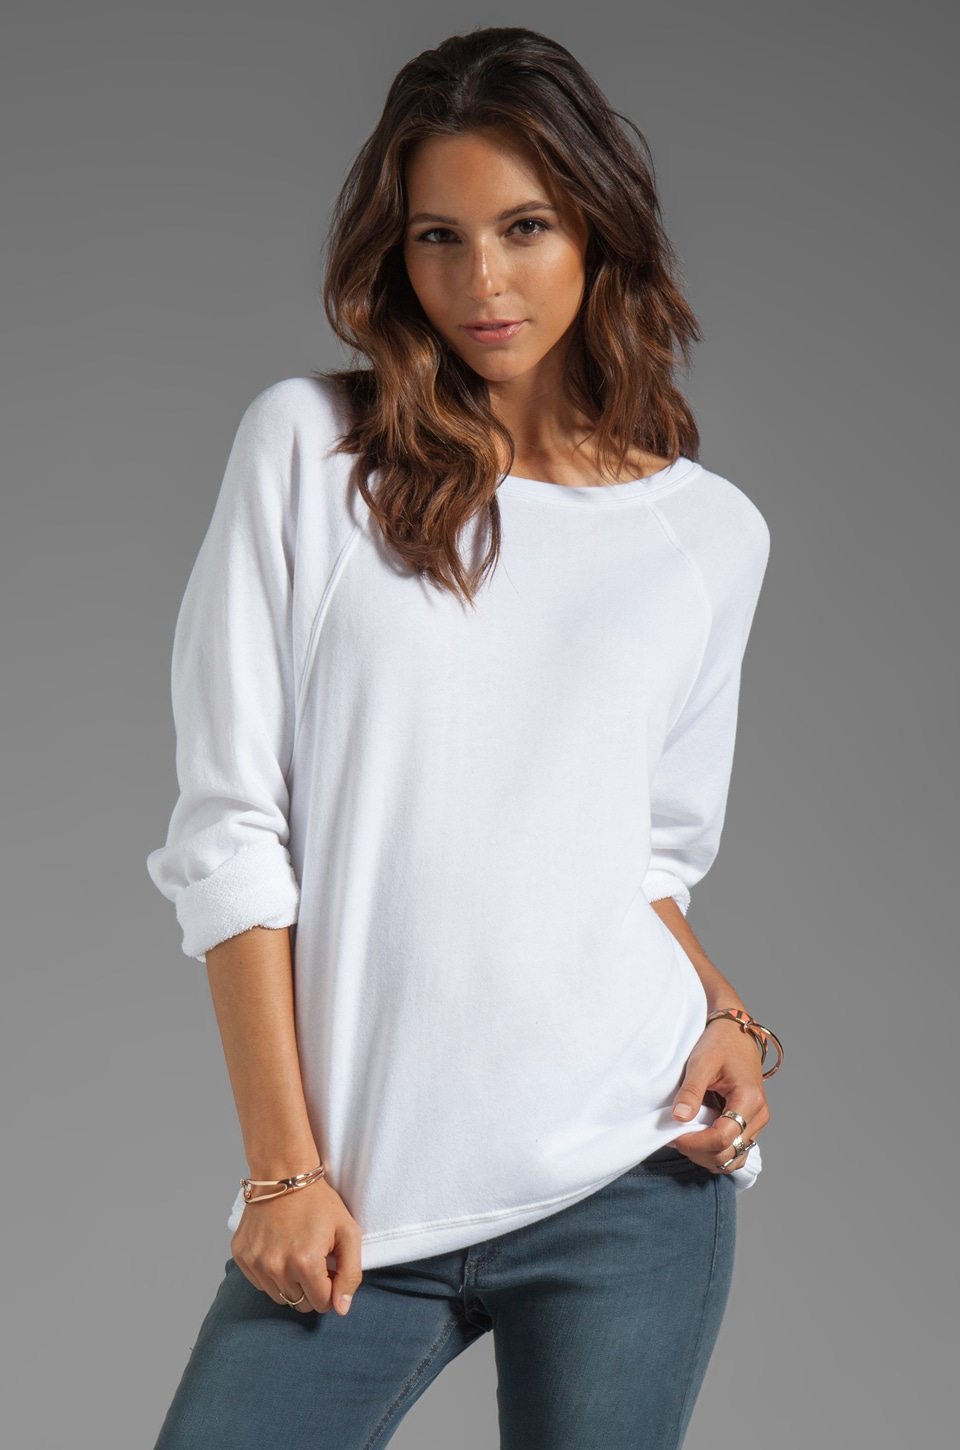 Enza Costa Cashmere French Terry Long Sleeve Raglan Sweatshirt in White